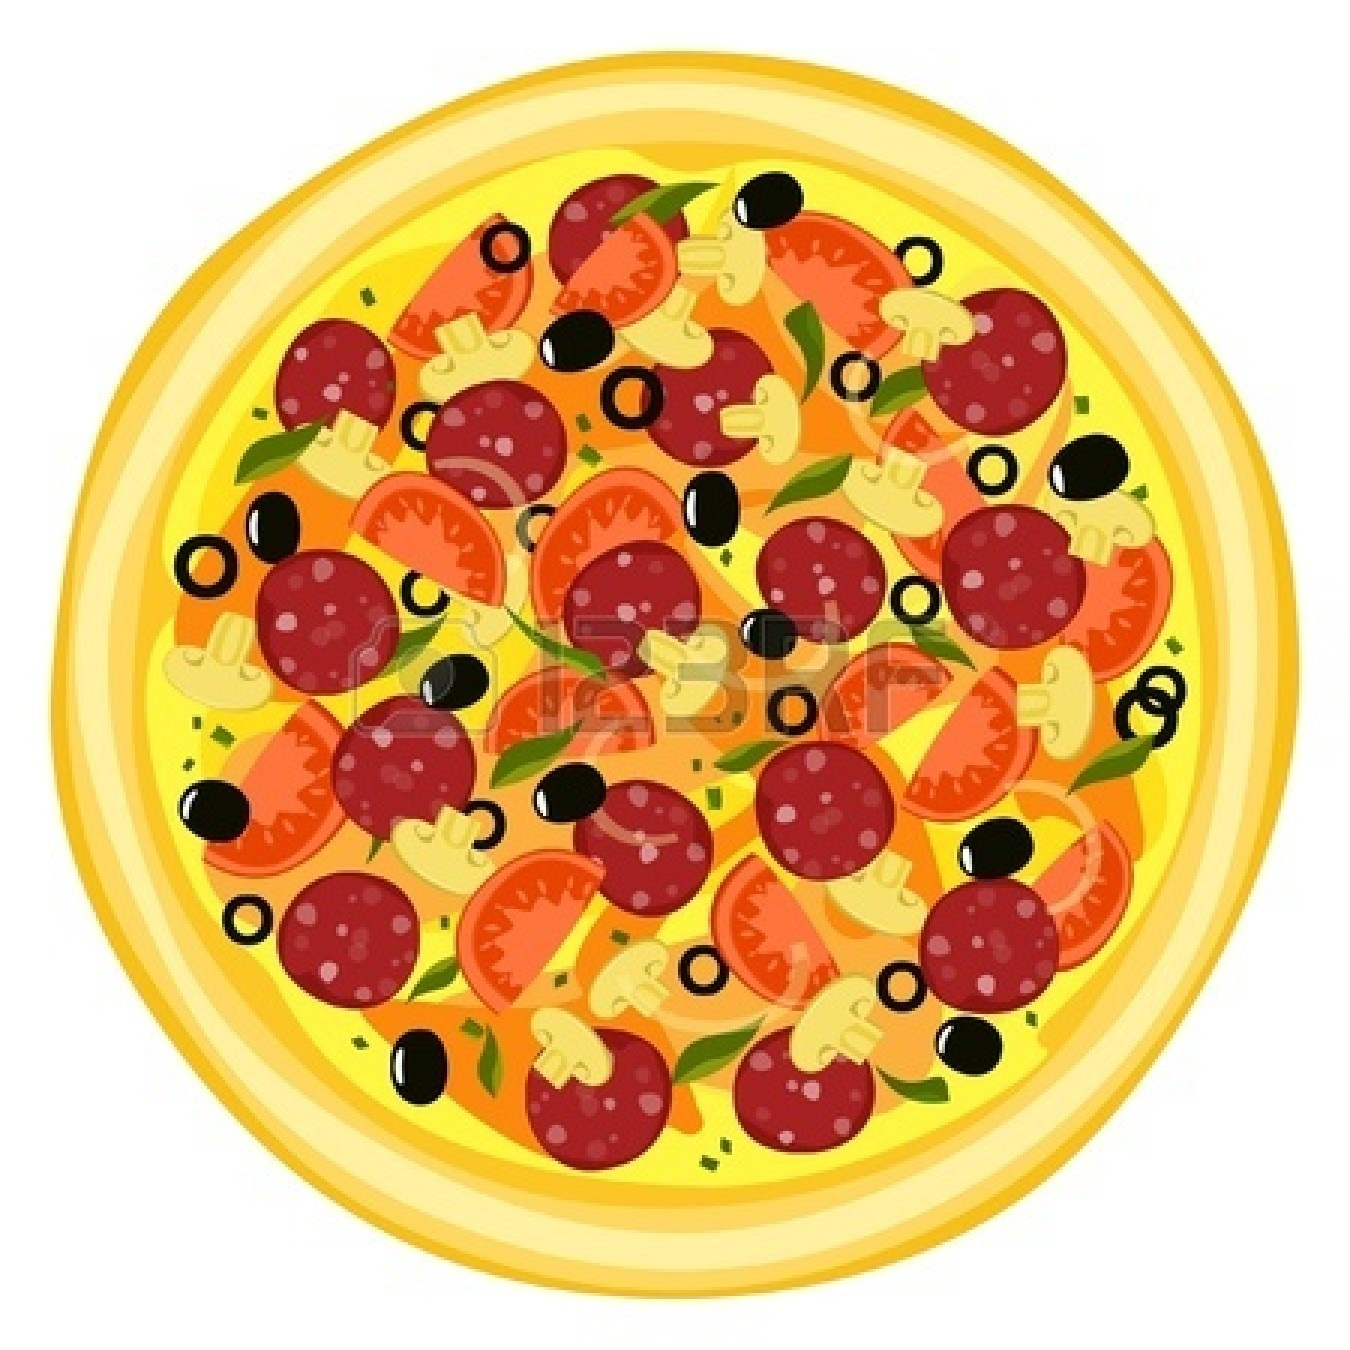 Whole pizza clipart 1 » Clipart Station.